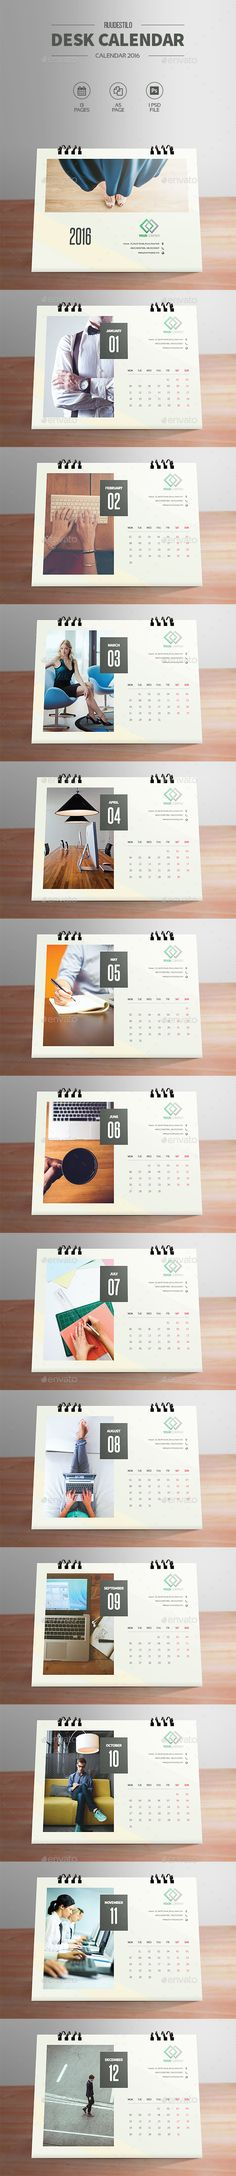 Buy Clean Desktop Calendar 2018 by firudra on GraphicRiver. Clean Desktop Calendar 2016 This template can be used for making desk calendar of a corporate company as well as oth. Desk Calender, Calendar Layout, Desktop Calendar, Photo Calendar, Kids Calendar, Graphic Design Calendar, Graphic Design Magazine, Magazine Design, Flyer Poster